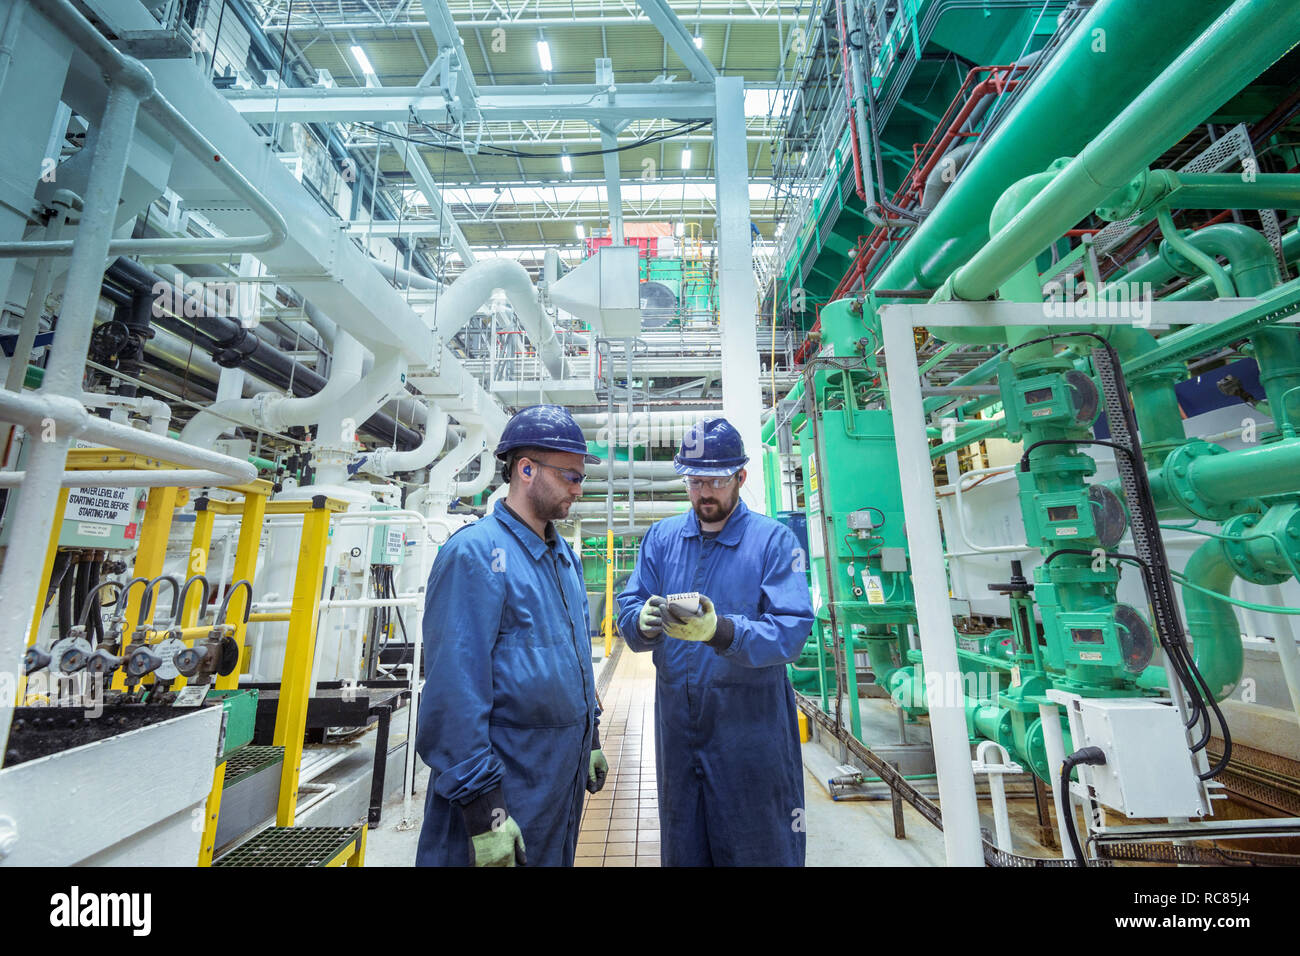 Engineers in turbine hall in nuclear power station - Stock Image